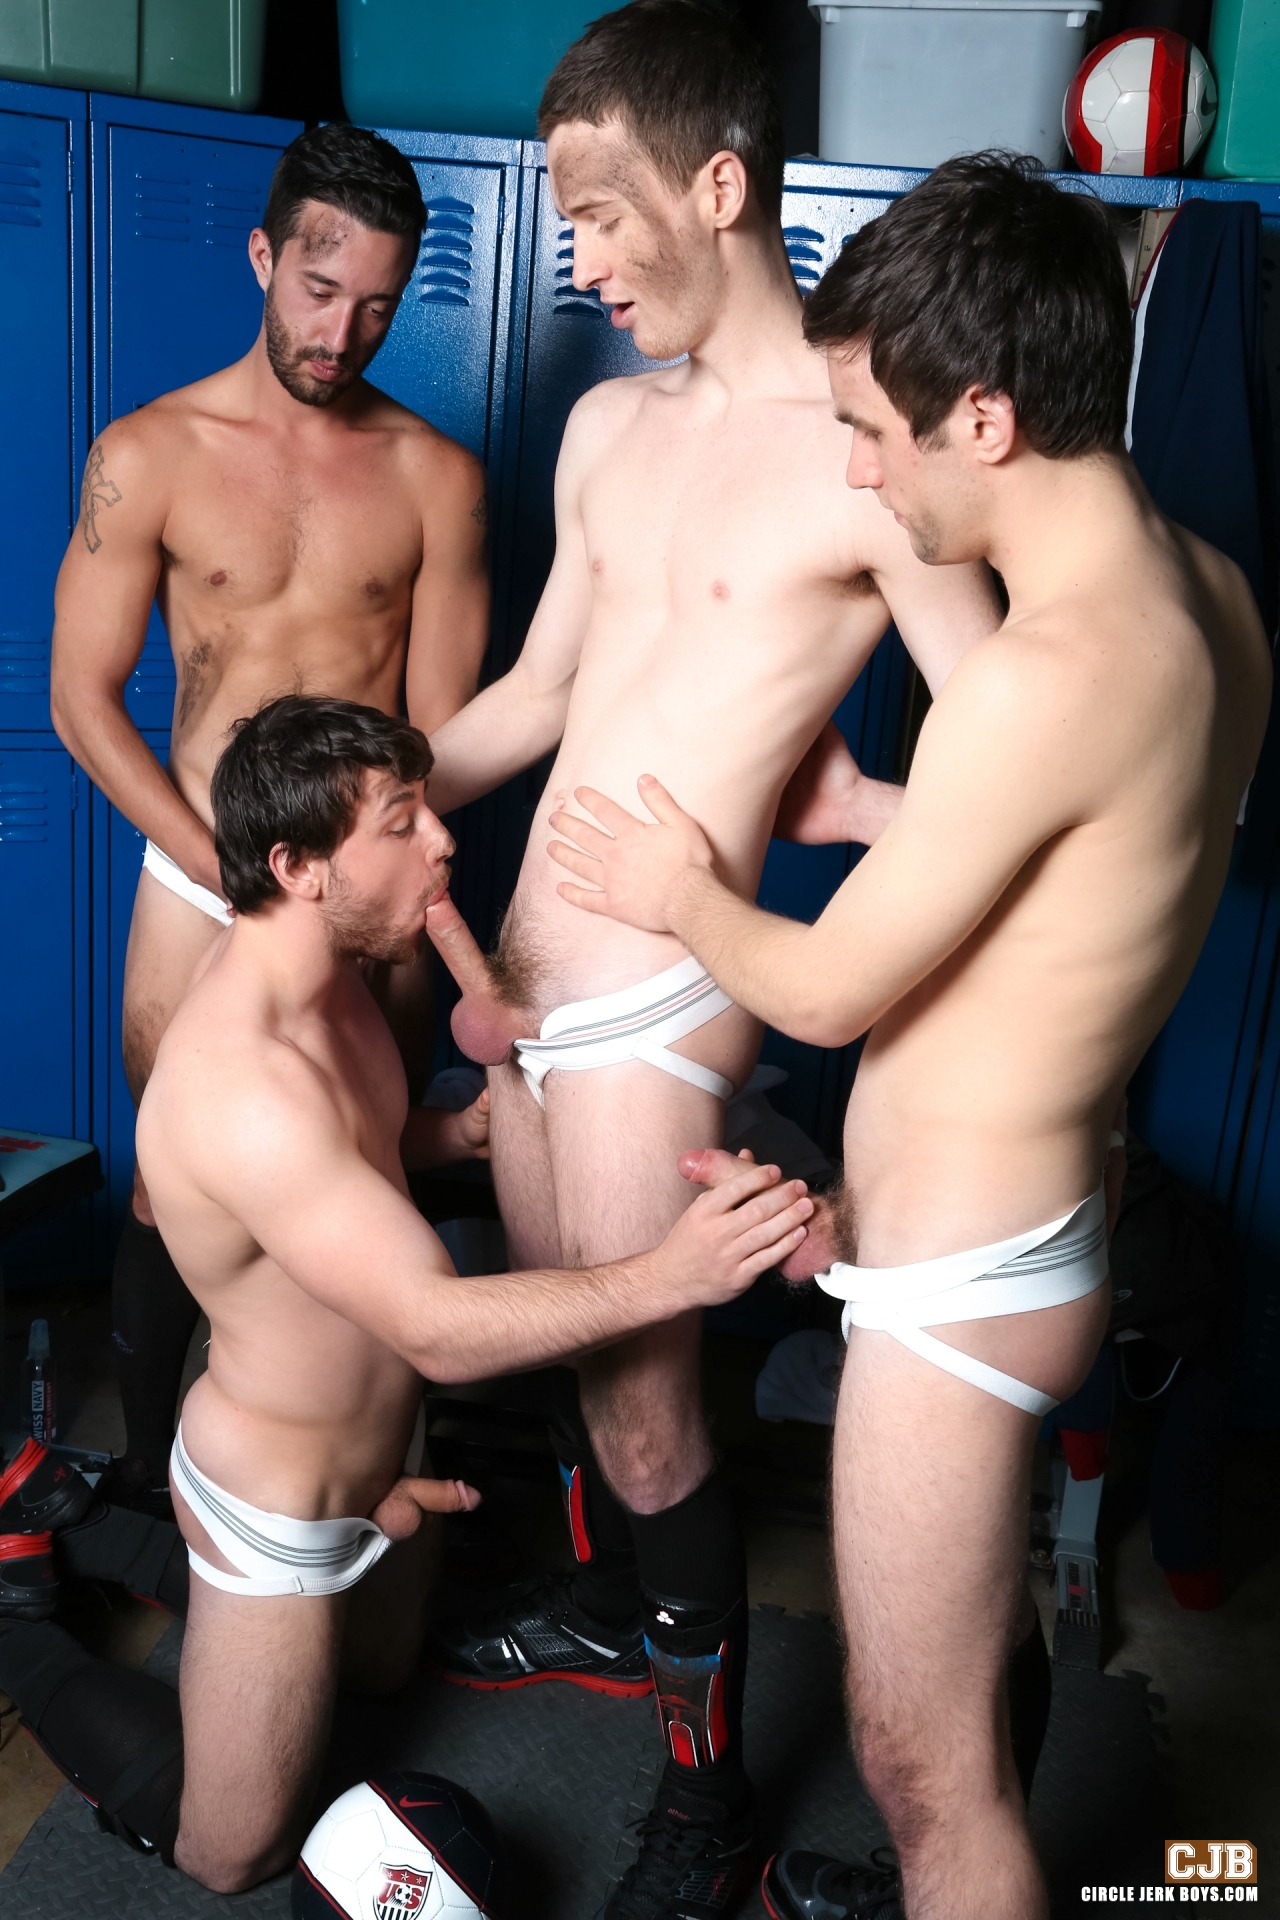 from Moshe free gay porn circle jerk